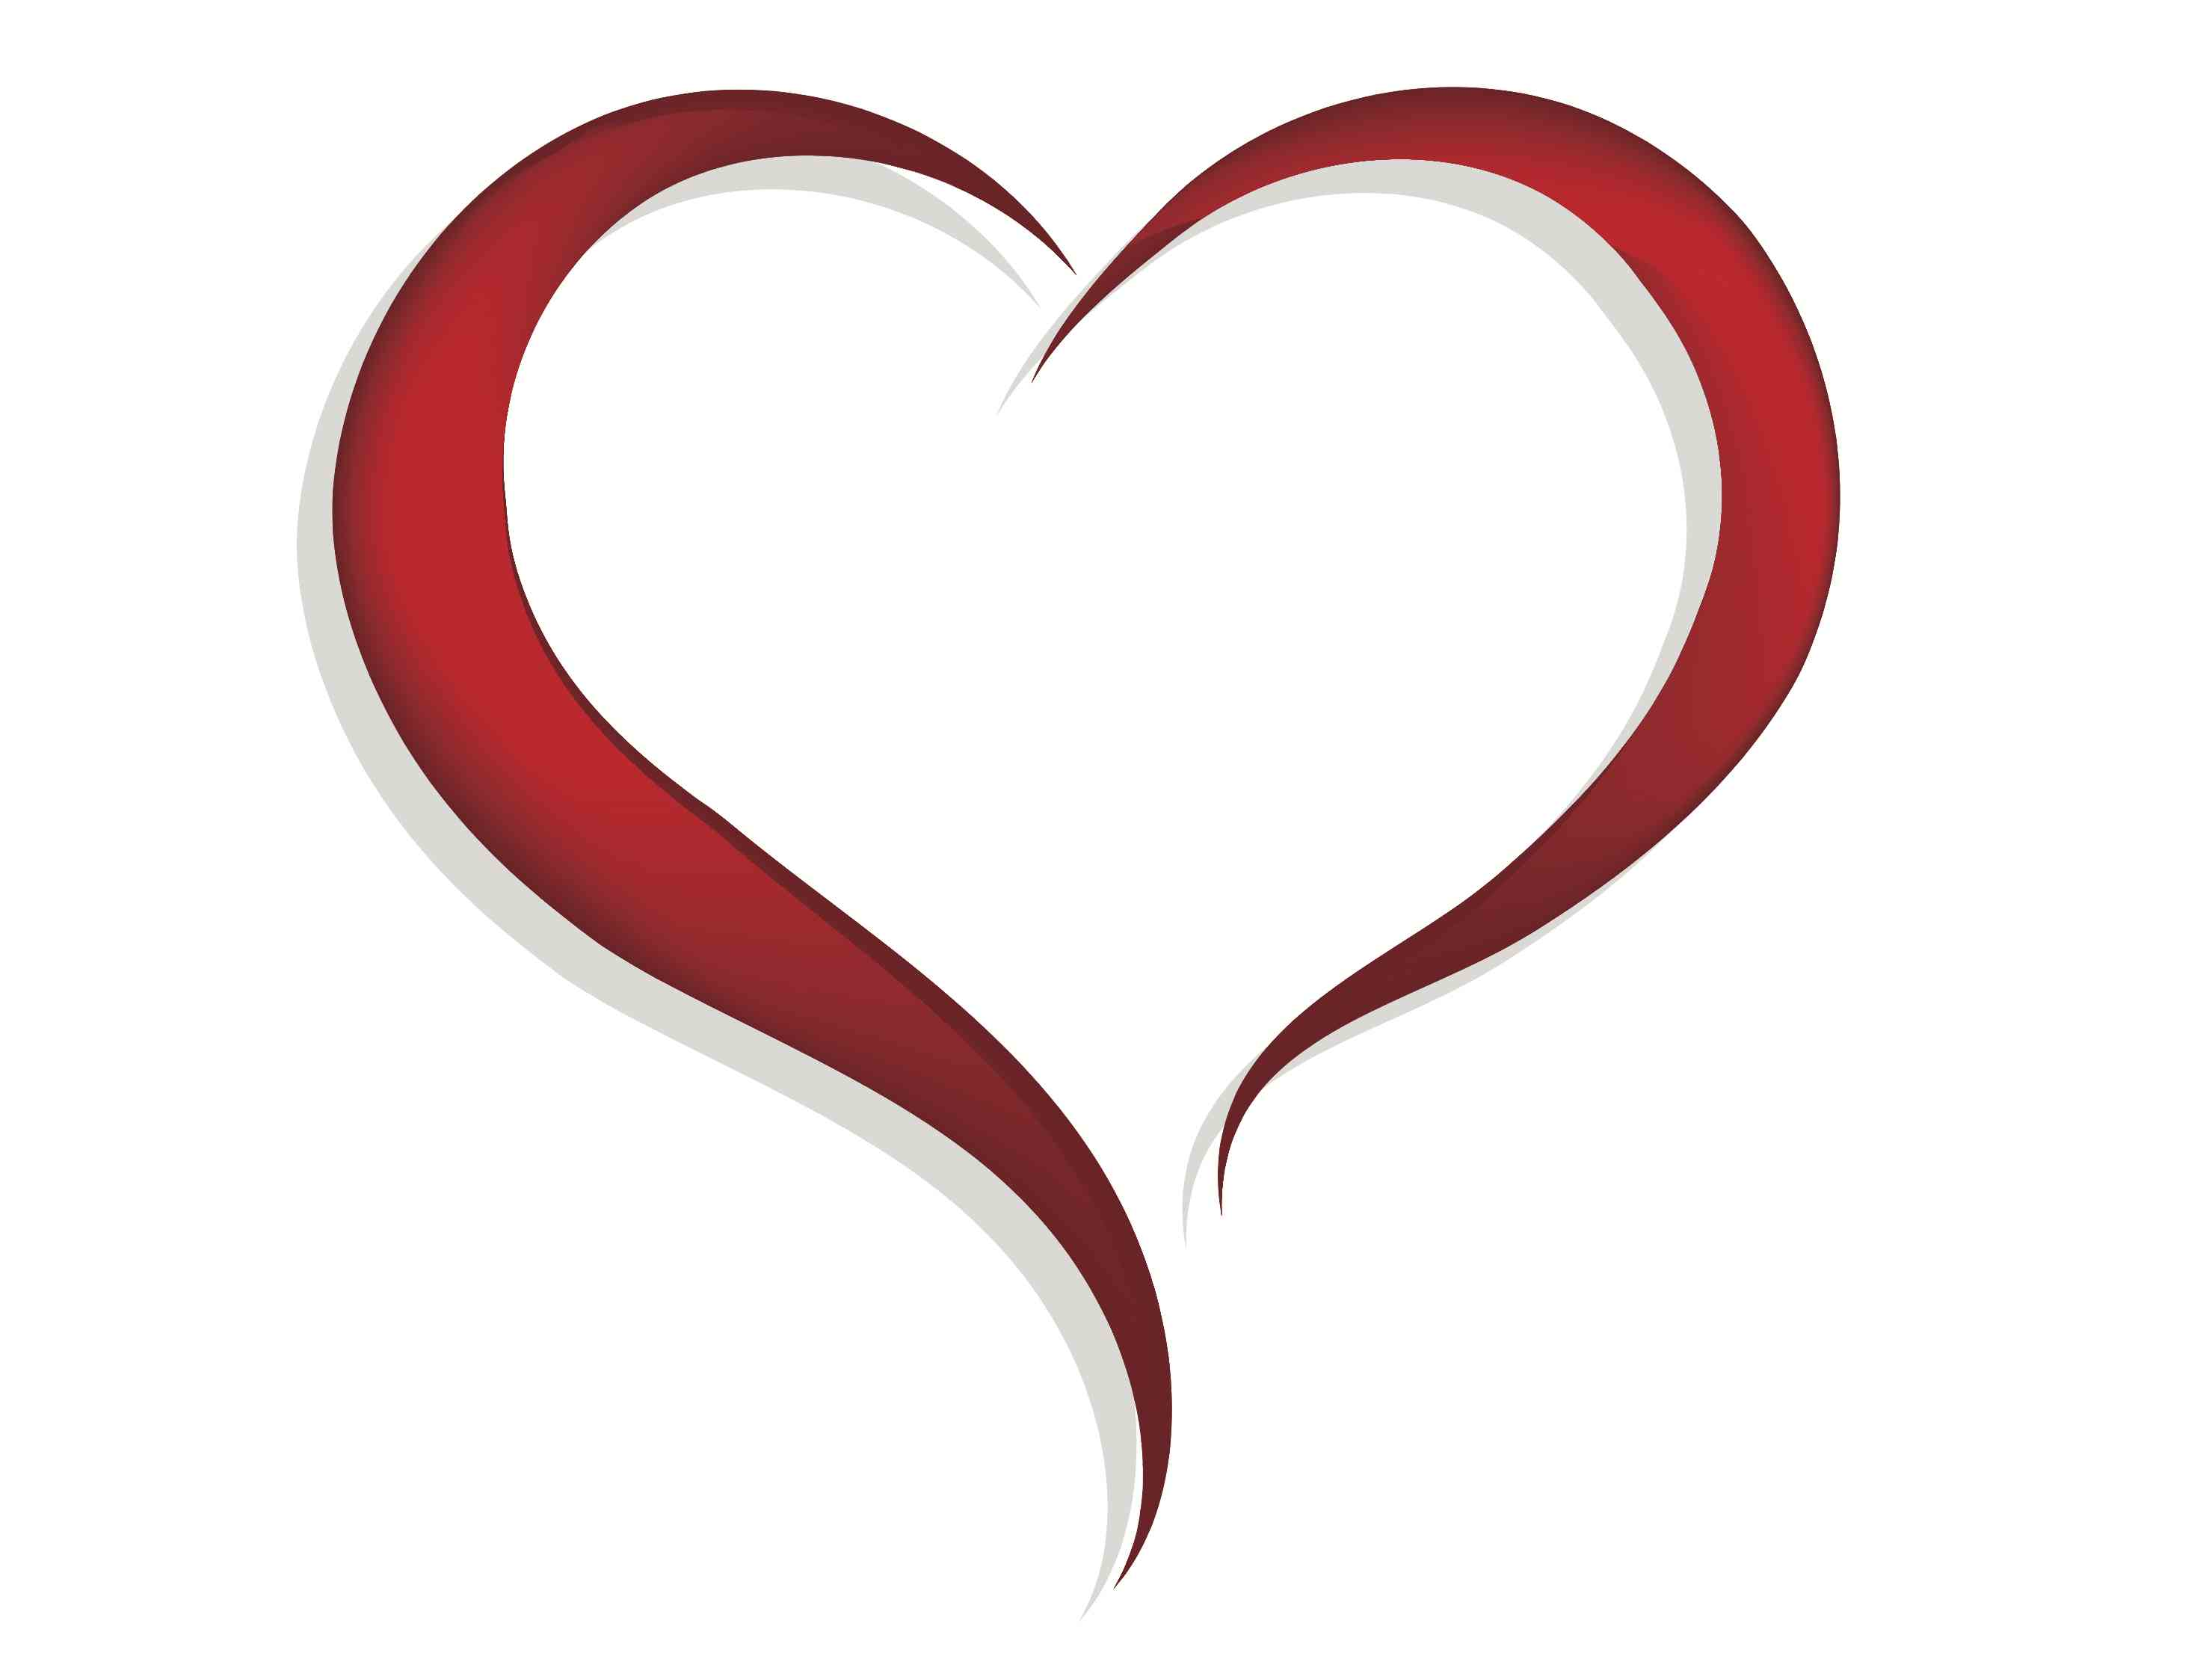 Heart PNG HD Transparent Background - 122736